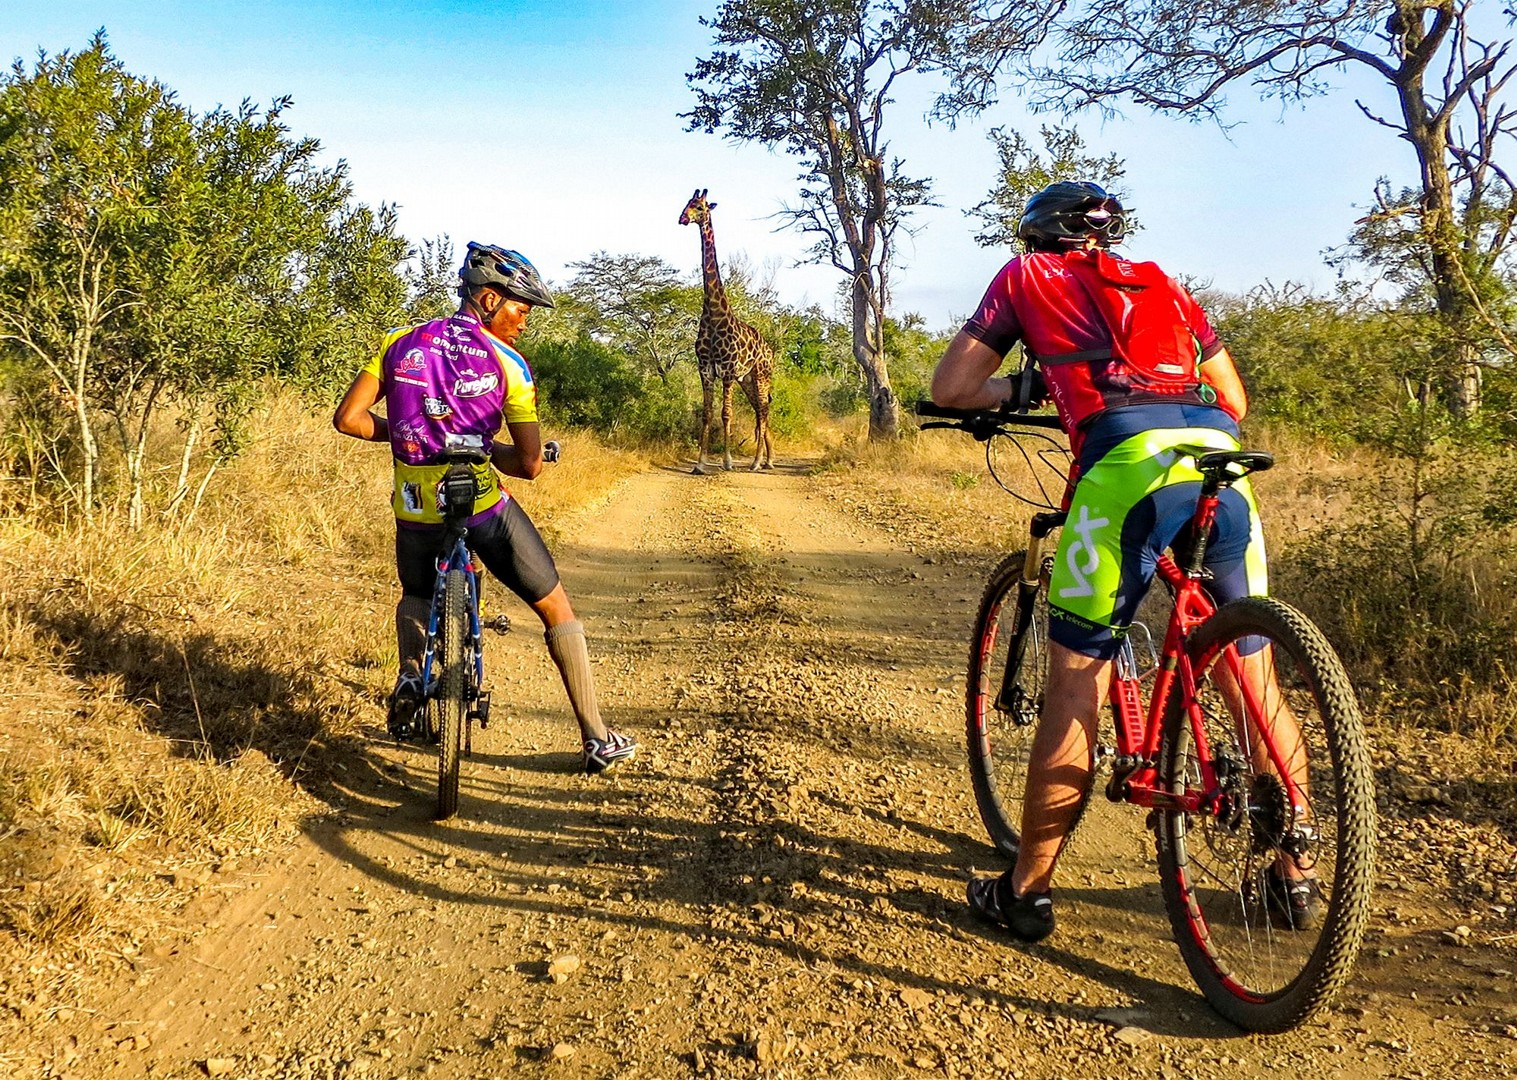 rgfdgfg20.jpg - Eswatini (Swaziland) - Cycling Safari - Cycling Adventures